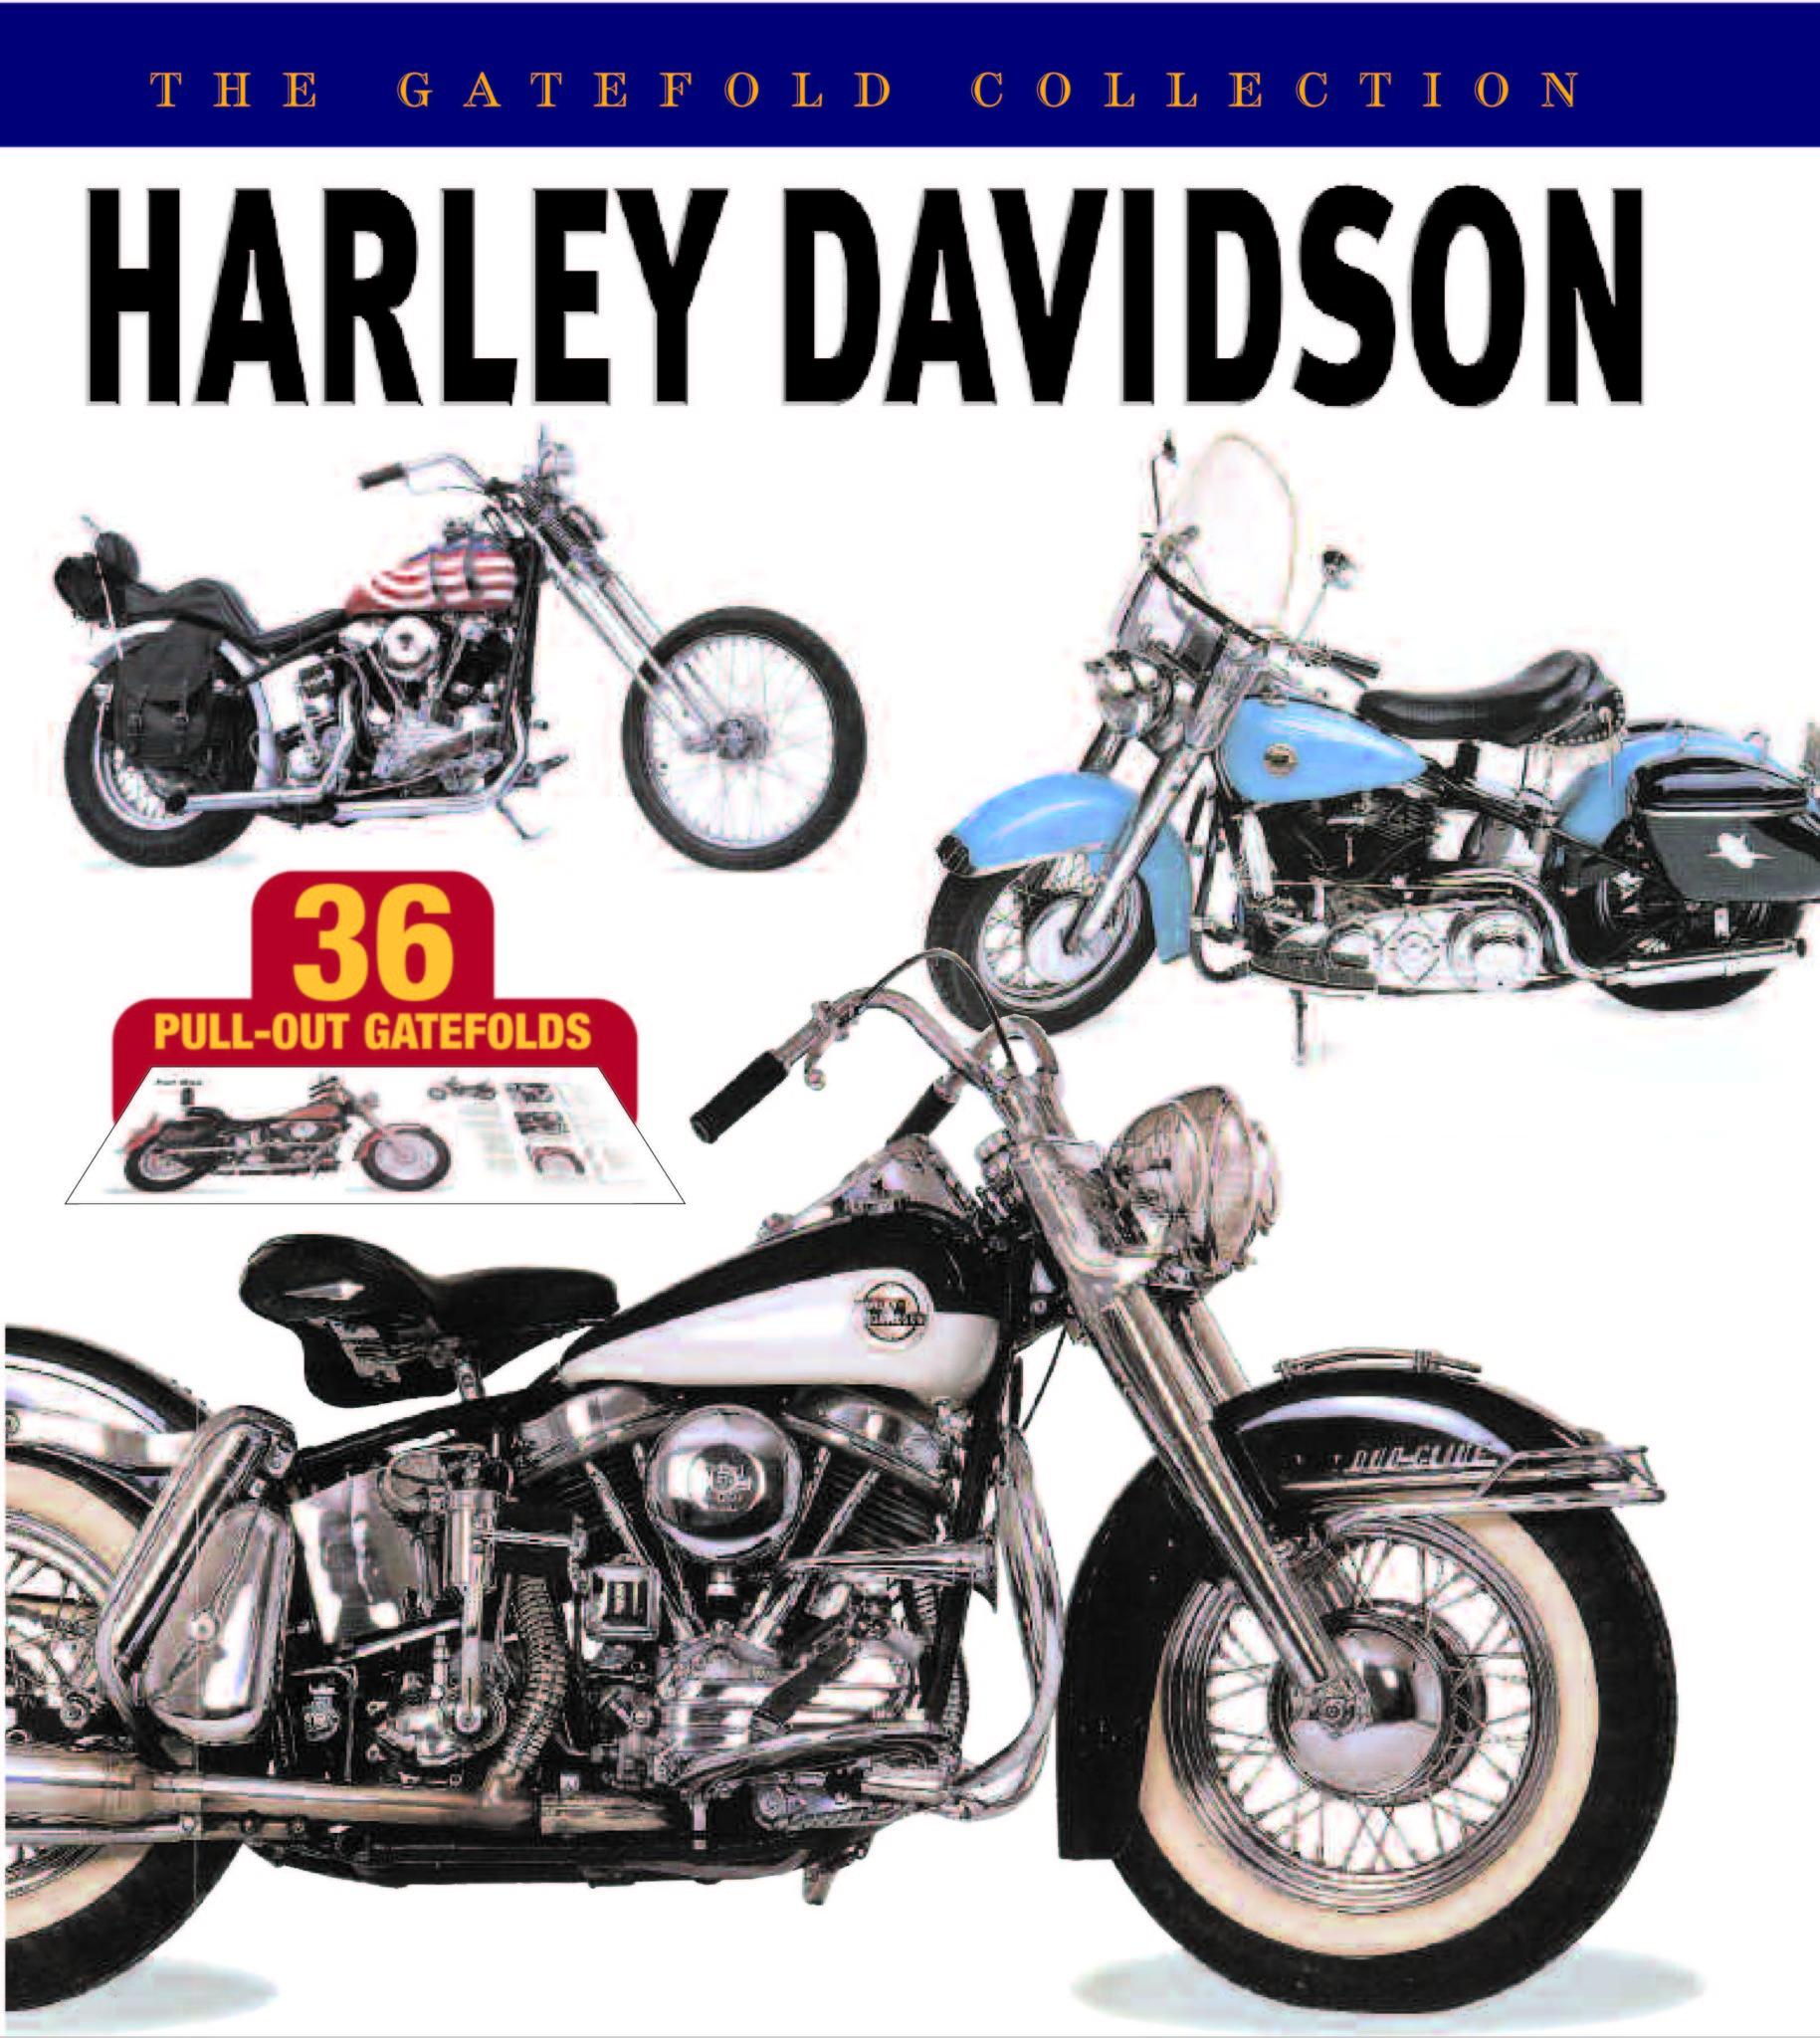 Harley Davidson: The Gatefold Collection